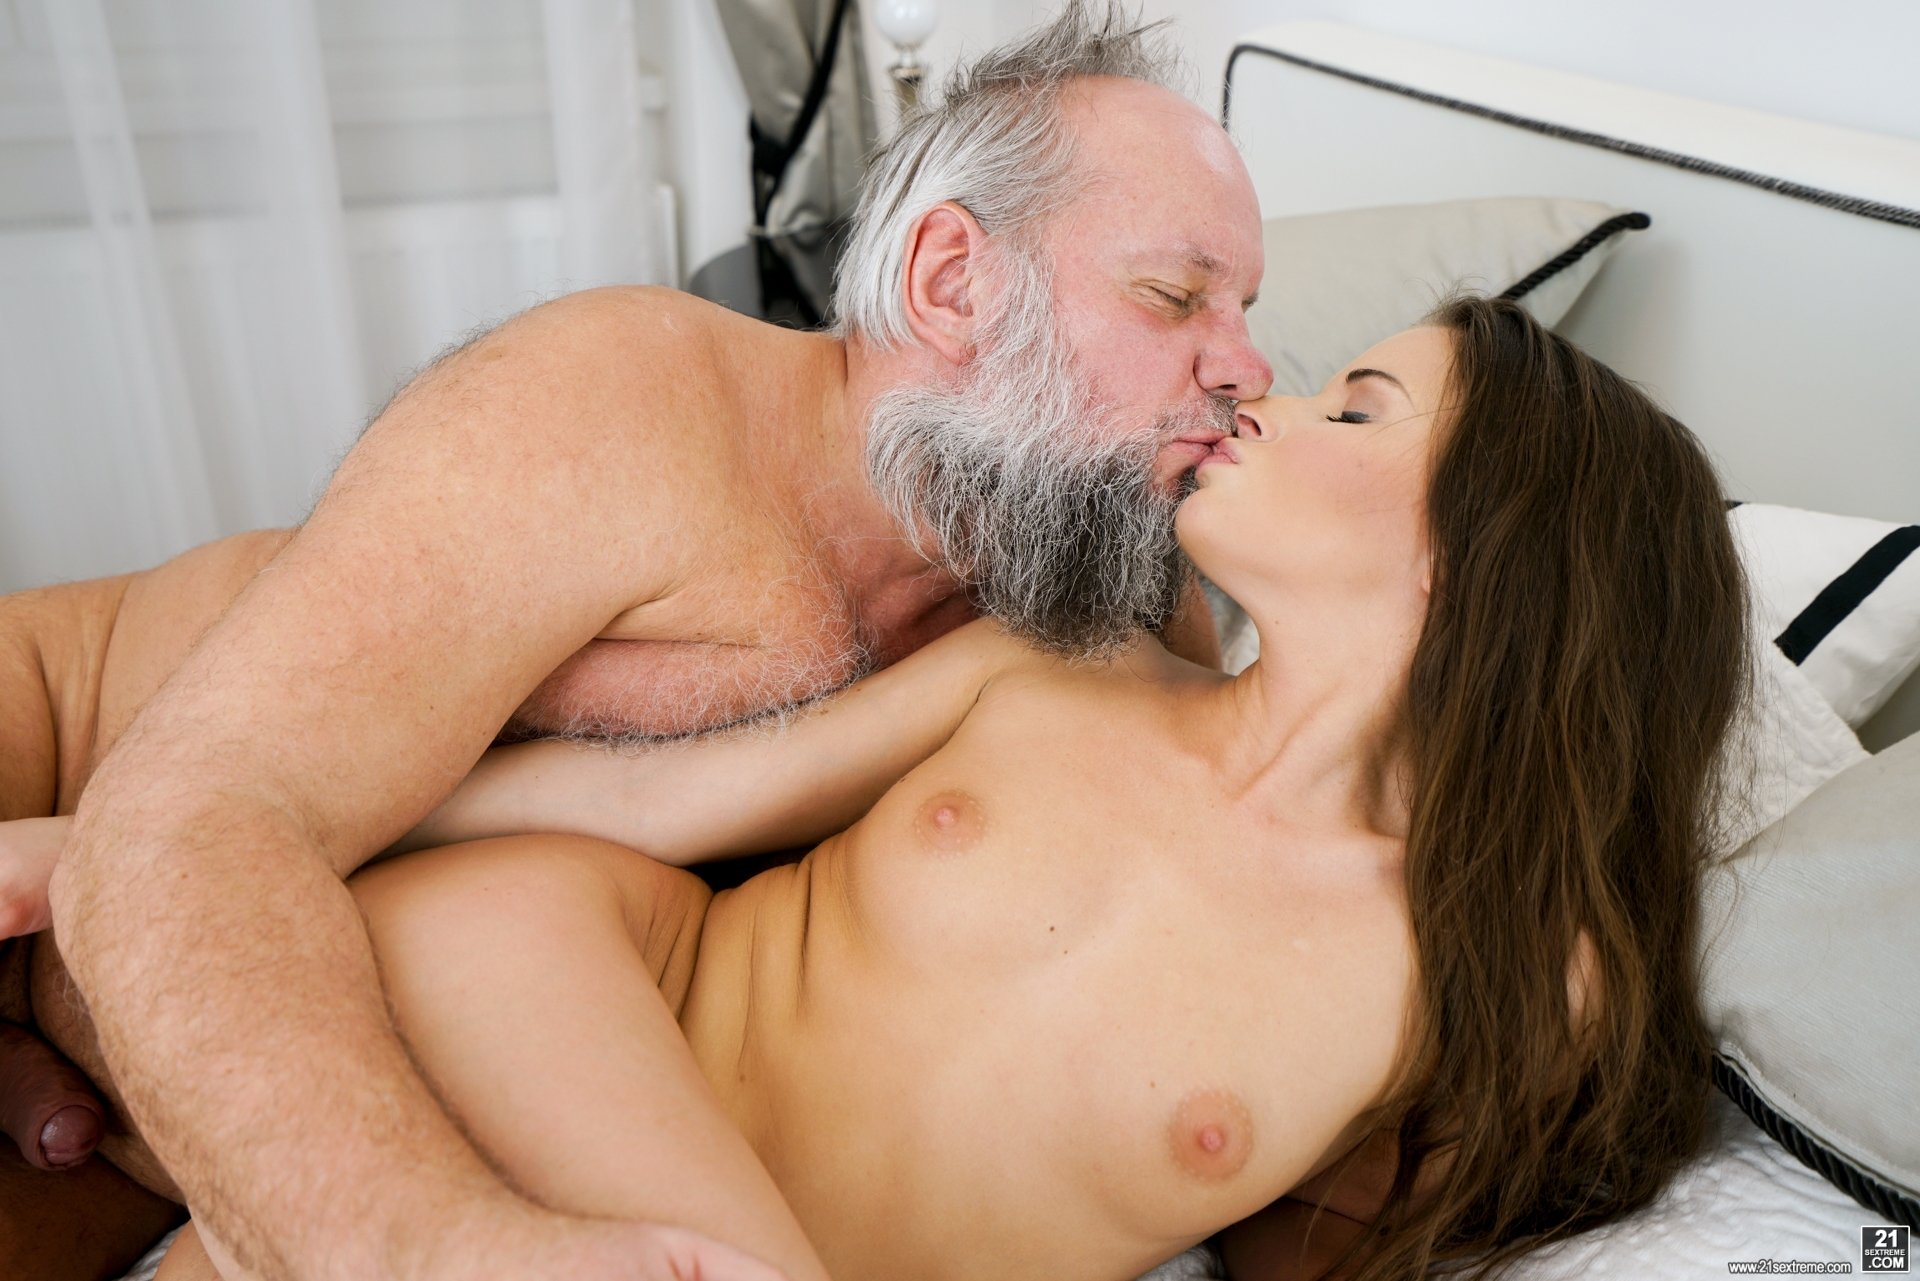 Old man fuck hd, sauth afirican faking videos sexy